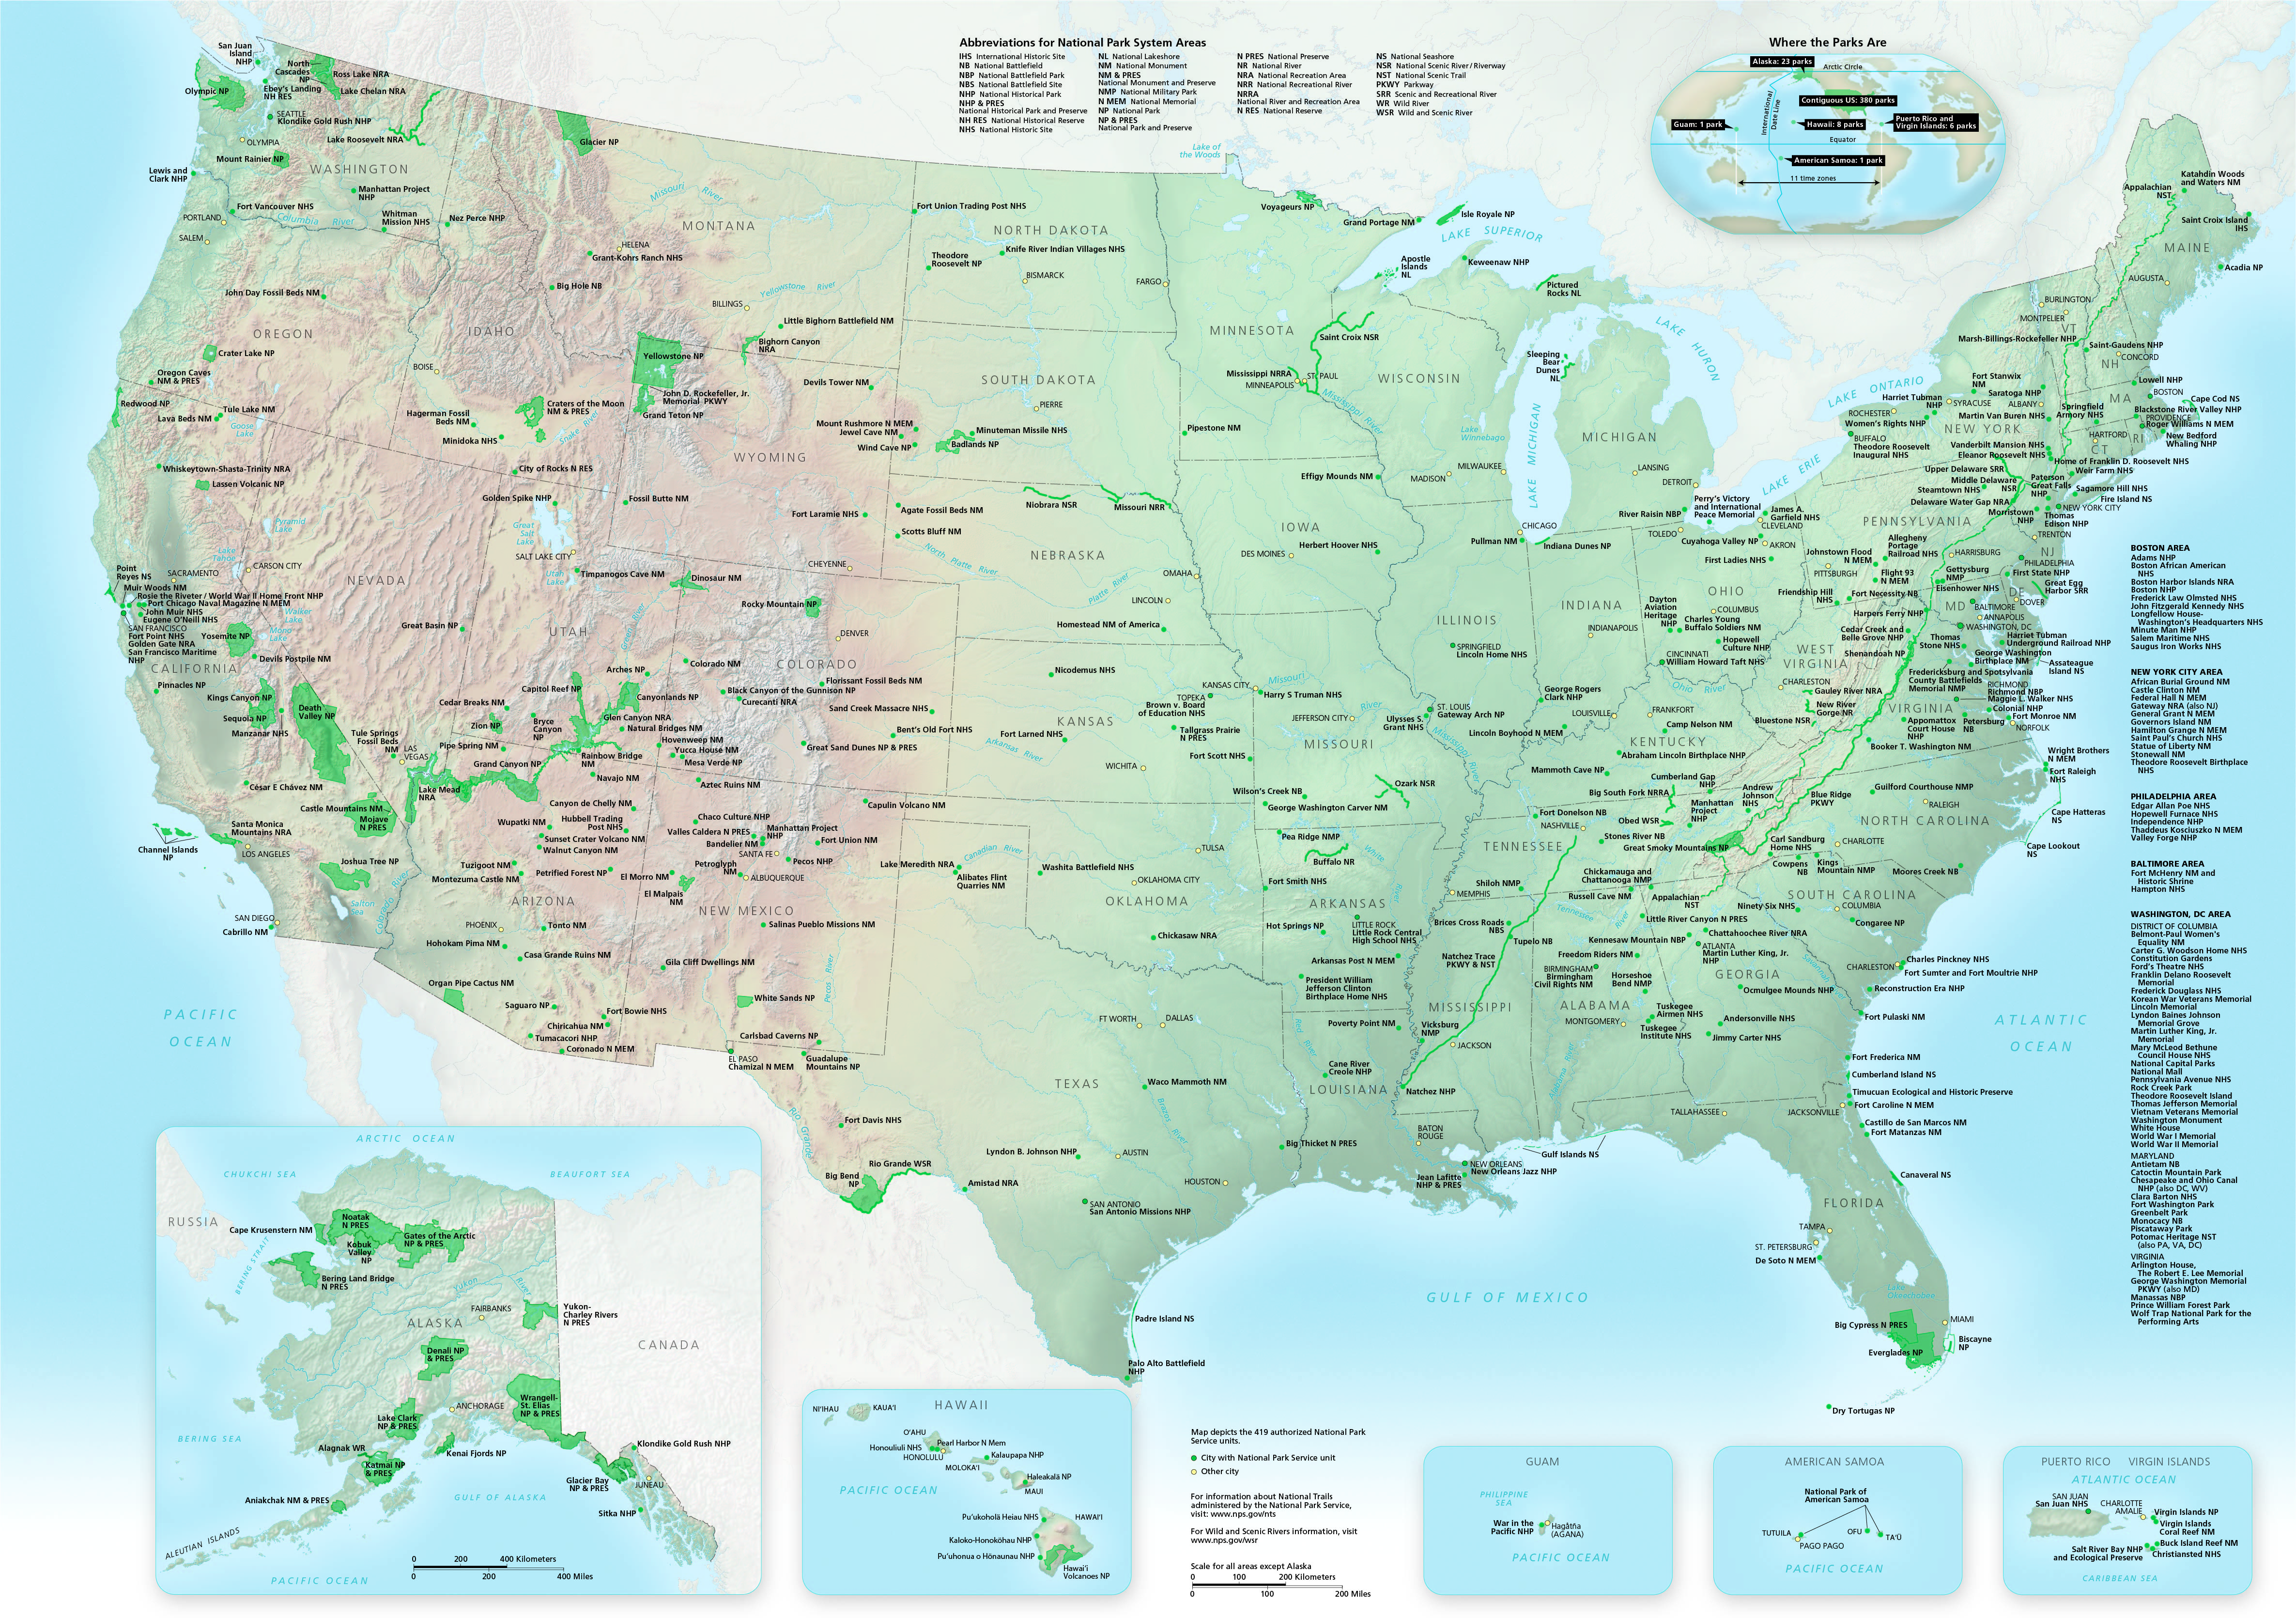 Us Map With National And State Parks Parks by State | NPMaps.  just free maps, period.